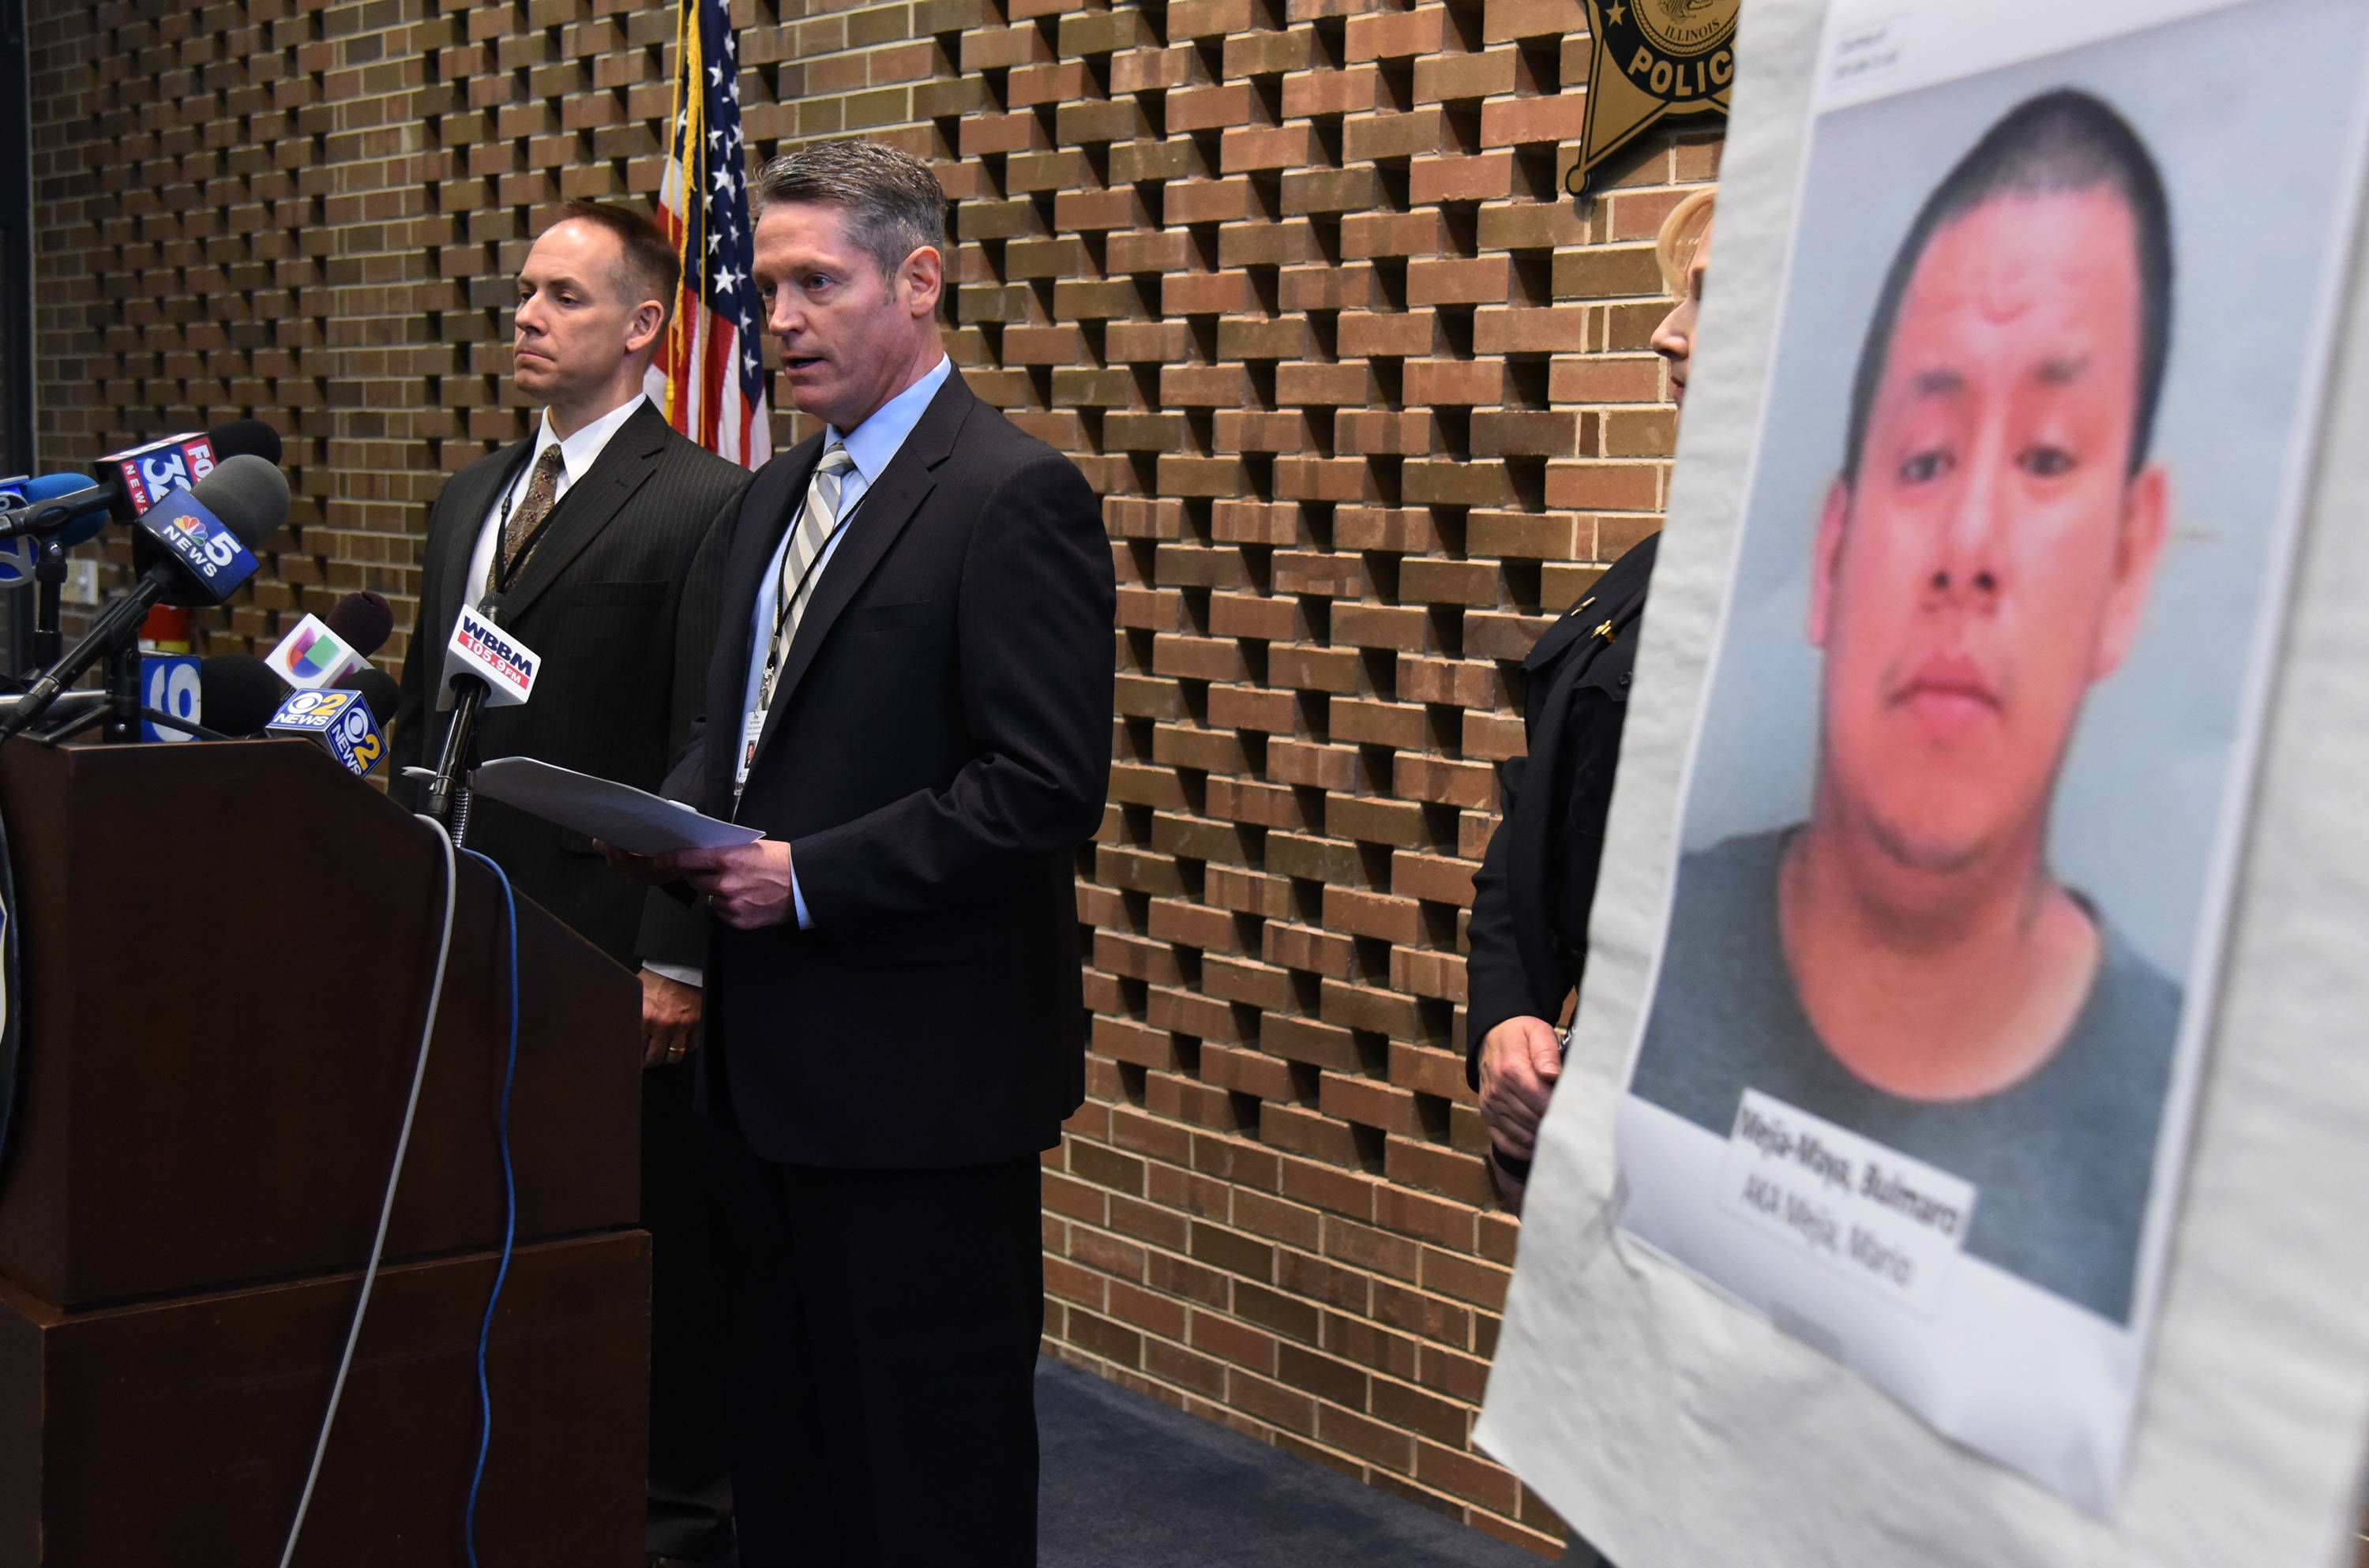 Schaumburg police Cmdr. Kurt Metzger speaks at a news conference Thursday to announce the arrest of Bulmaro Mejia-Maya, pictured at right. Police Lt. Michael DeGiulio is at the left.